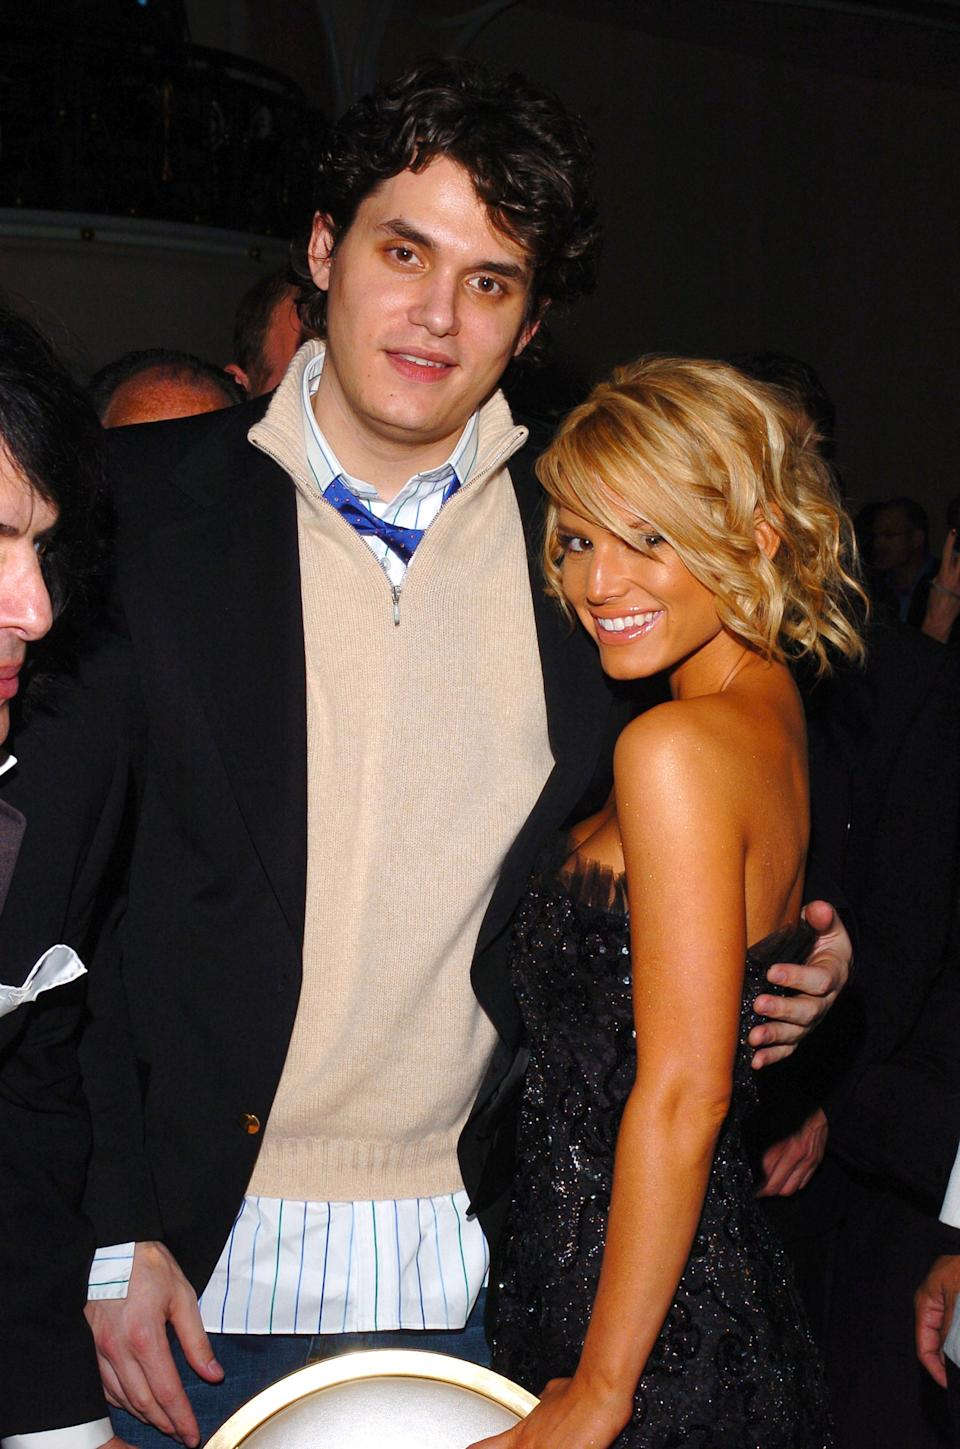 (EXCLUSIVE, Premium Rates Apply) John Mayer and Jessica Simpson (Photo by L. Cohen/WireImage for J Records)